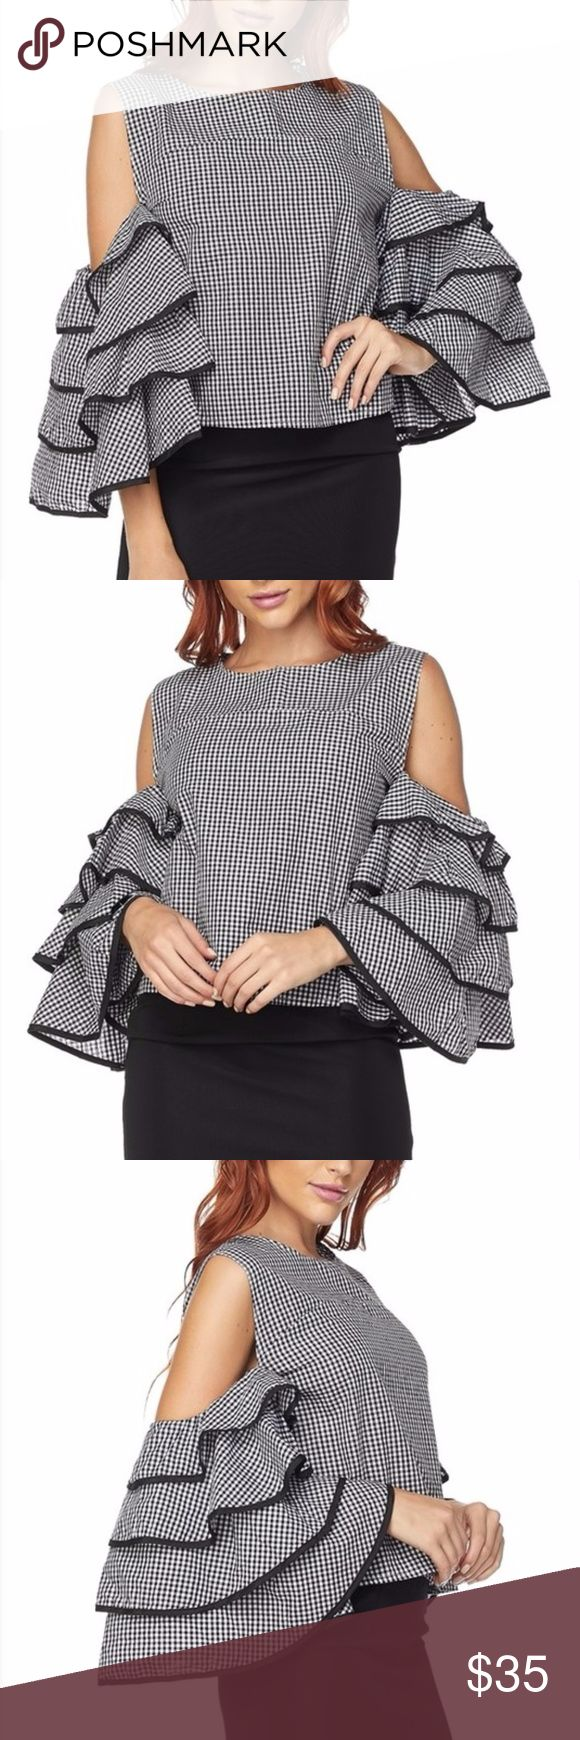 Cold Shoulder Wide Ruffle Sleev Blouse Fashion Top Sexy and trendy Cutout Cold shoulder Blouse Fashion Top with wide tiered Ruffle sleeves. Black and white checker pattern with black contrast trim on sleeves. Zipper back closure. Imported. Brand New in original factory bag.  Size S 2/4: Bust 33-34 Waist 25-26 Hips 35-36 Size M 6/8: Bust 35-36 Waist 27-28 Hips 37-38 Size L 10/12: Bust 37-38 Waist 29-30 Hips 39-40  Size chart provided as a guidance. Tops Blouses